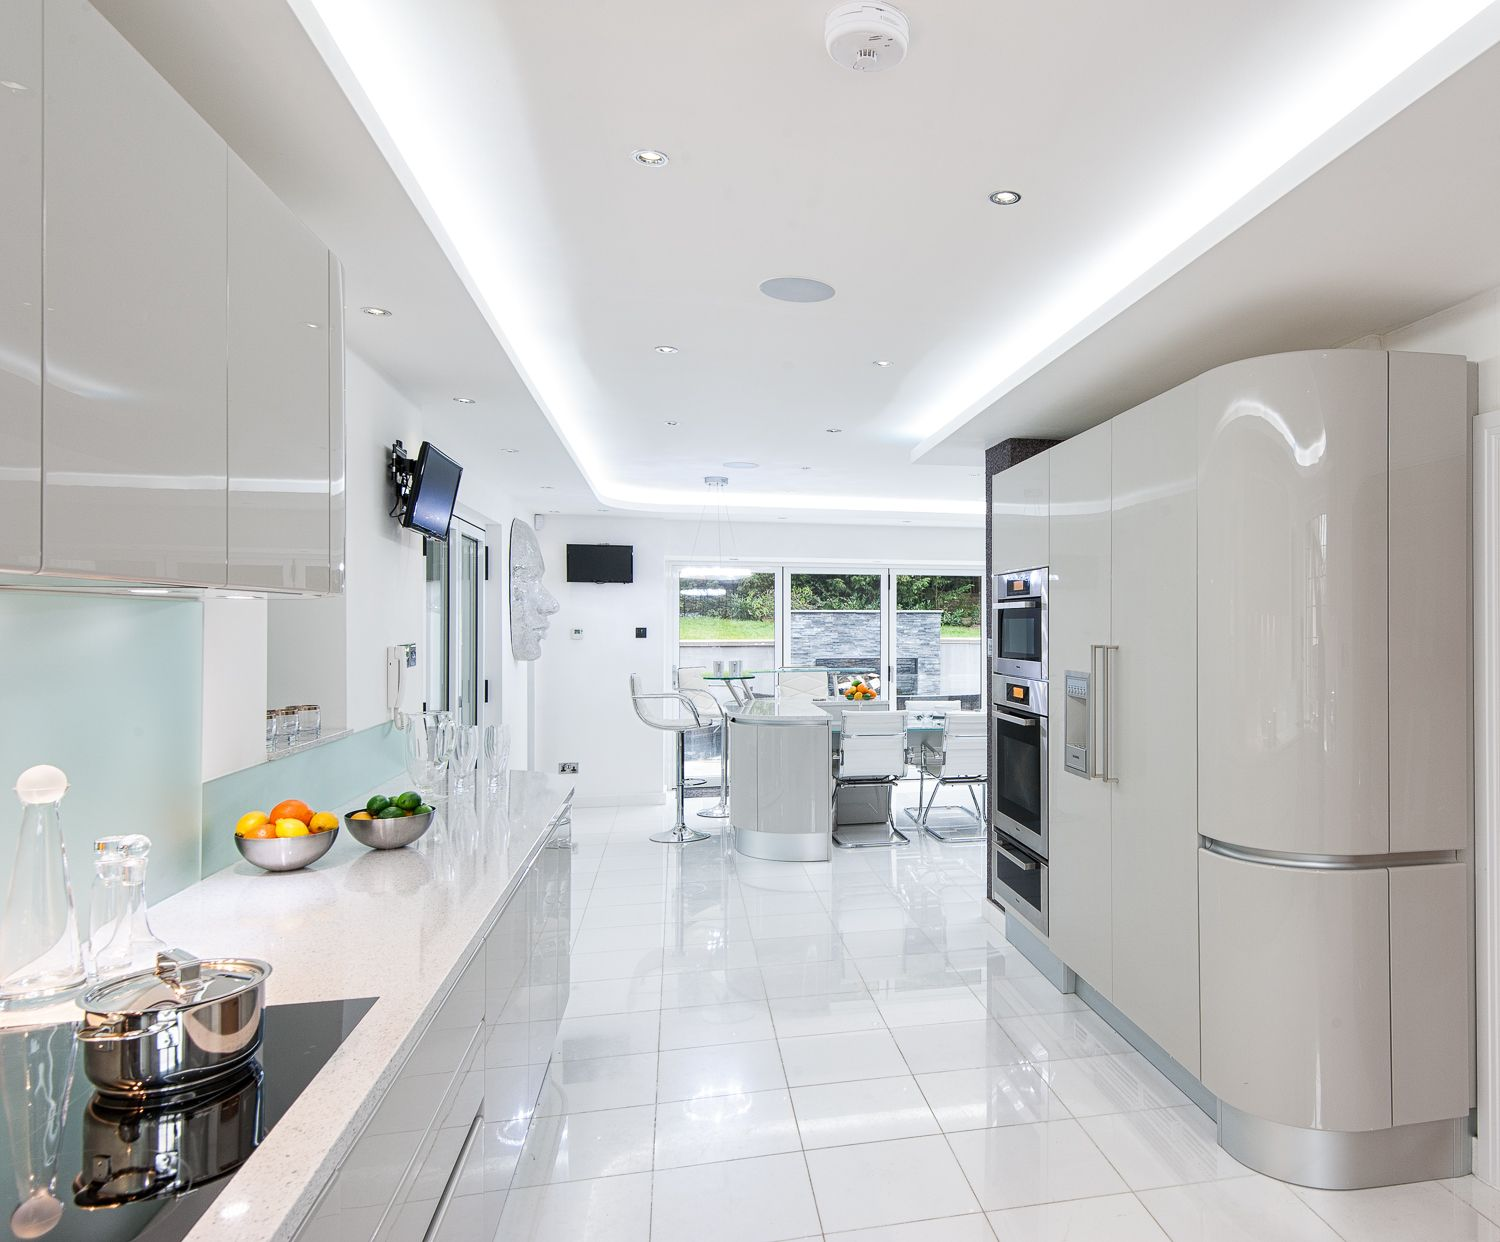 Bespoke Designer Kitchens From Urban Myth. We Design And Install Luxury  Kitchens Including The Full Pedini Range. View Our Collections, Read Case  Studies ...